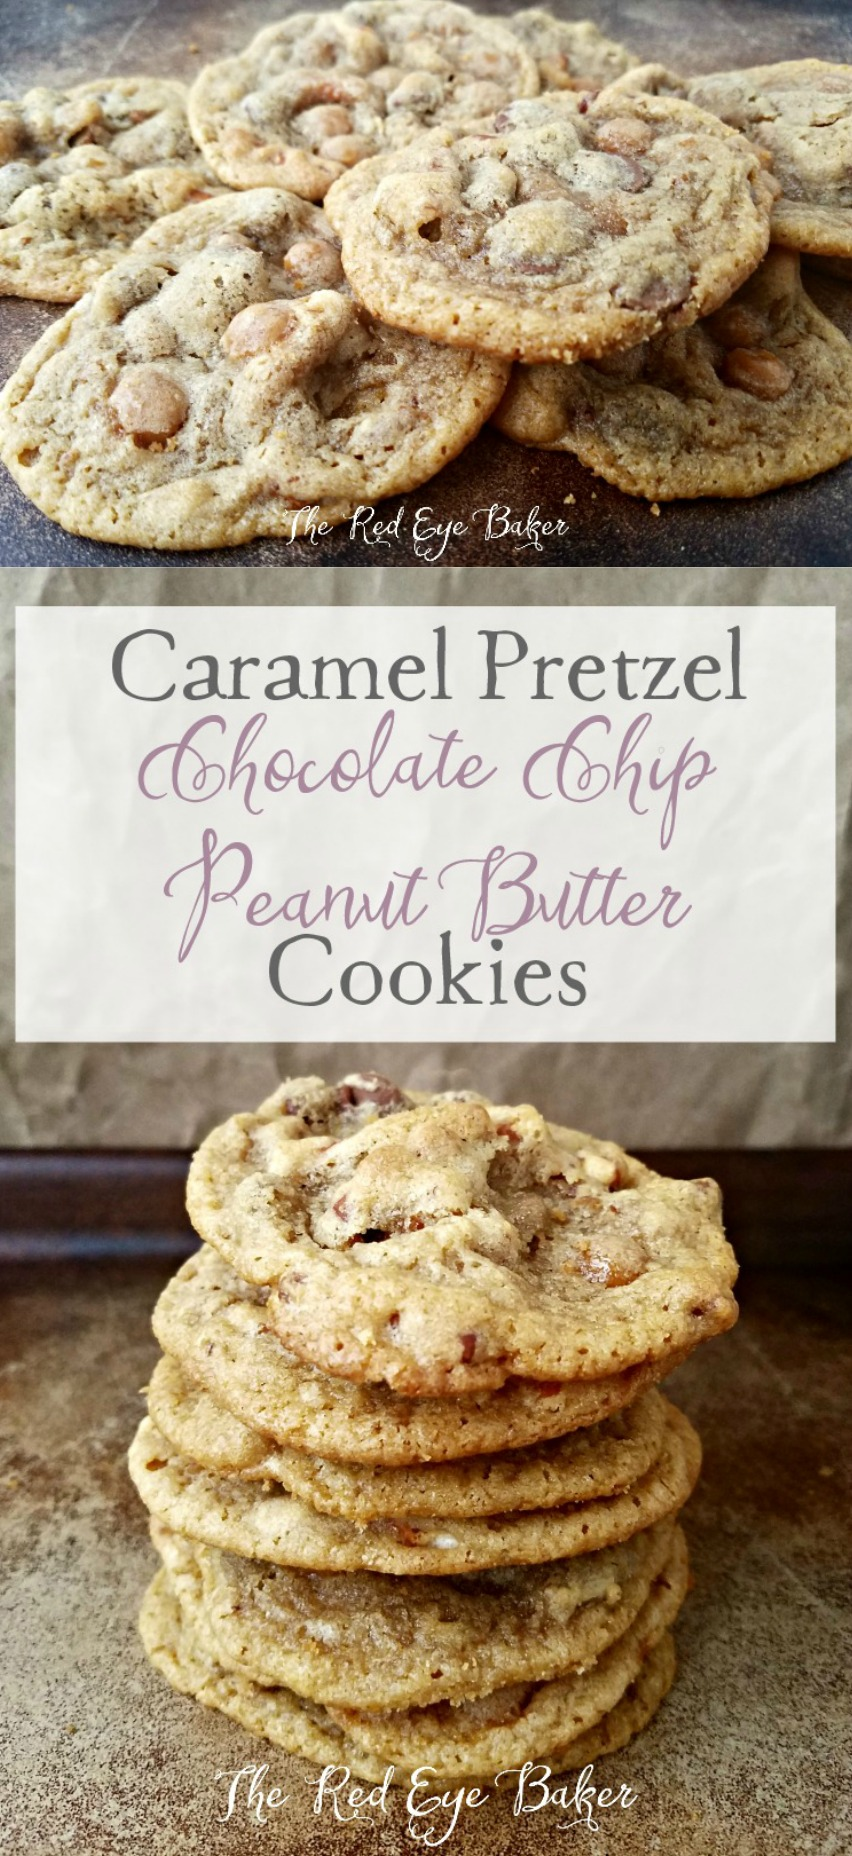 Caramel Pretzel Chocolate Chip Peanut Butter Cookies | If you love ooey, gooey, salty, and sweet then these Caramel Pretzel Chocolate Chip Peanut Butter Cookies are right up your alley!